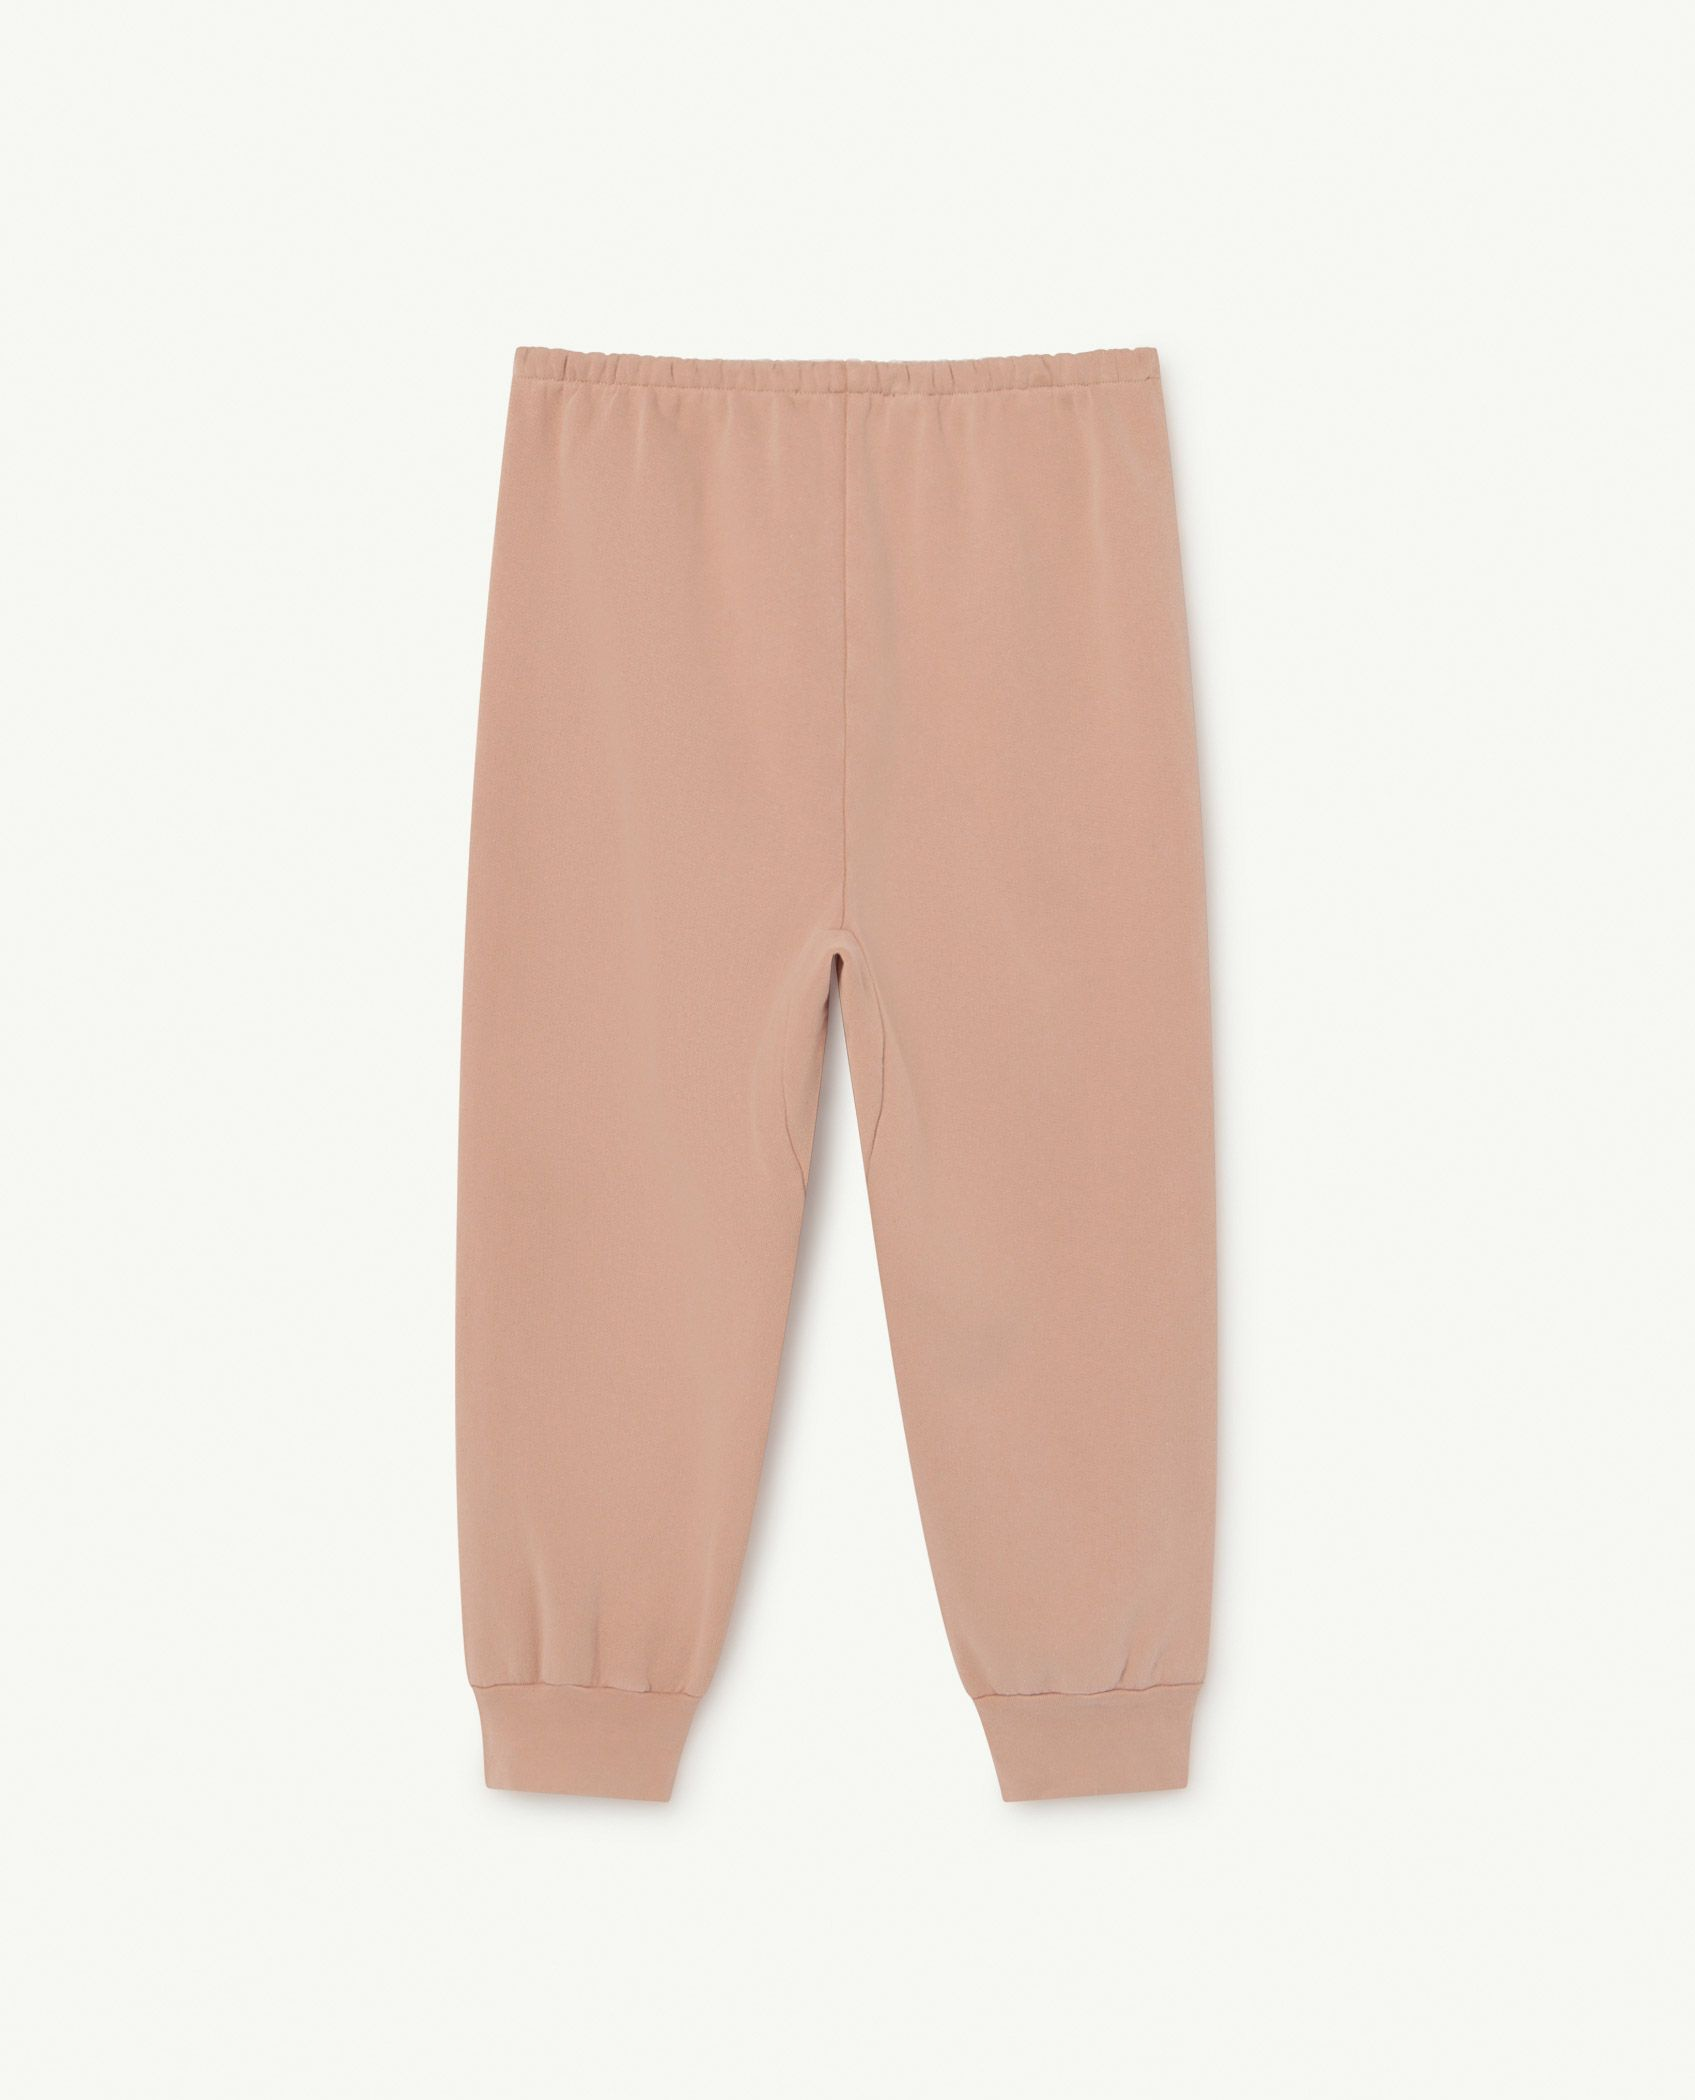 Soft Pink Logo Panther Trousers img-2